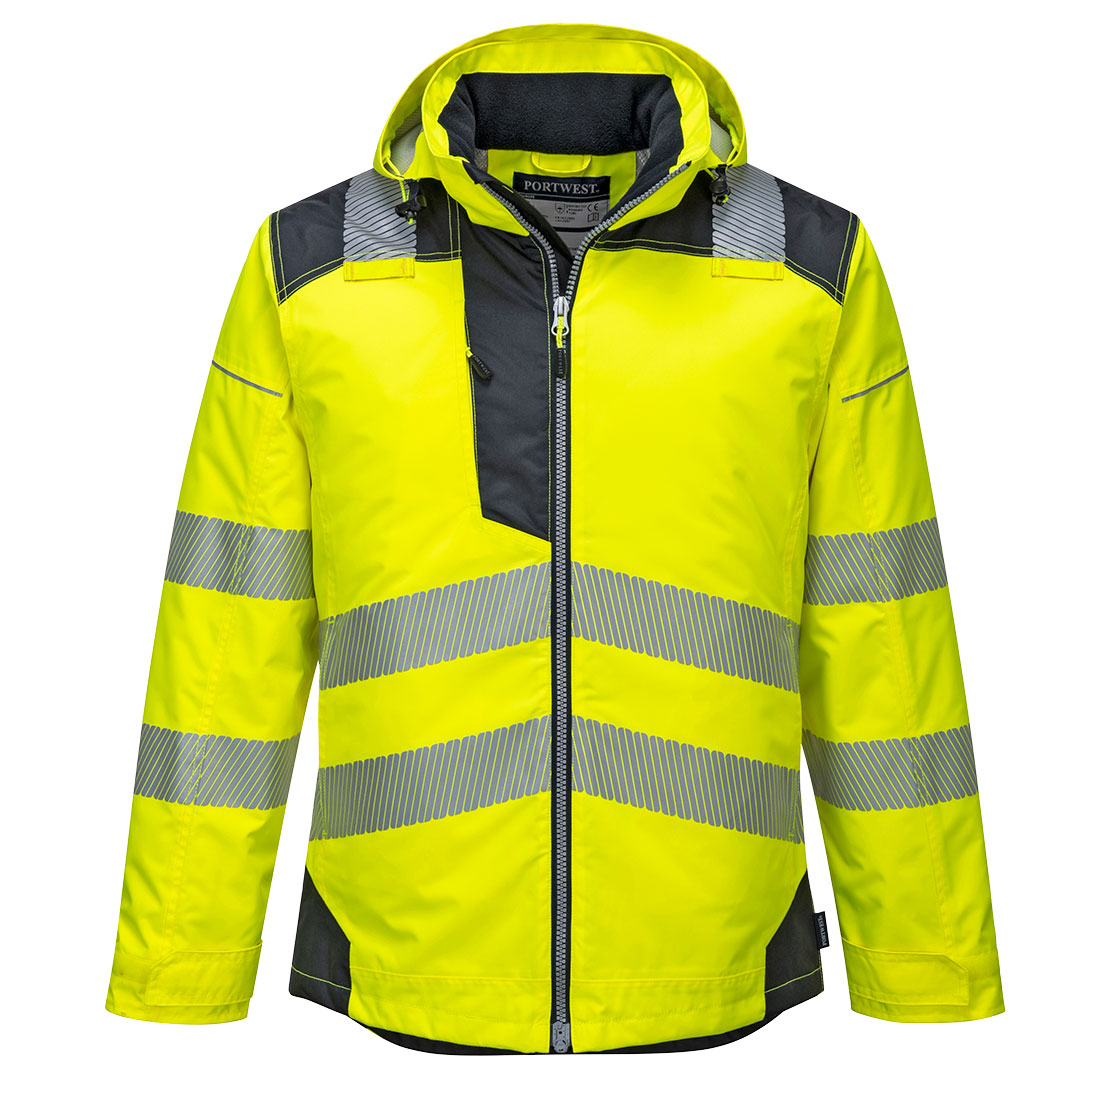 PW3 Hi-Vis Winter Jacket